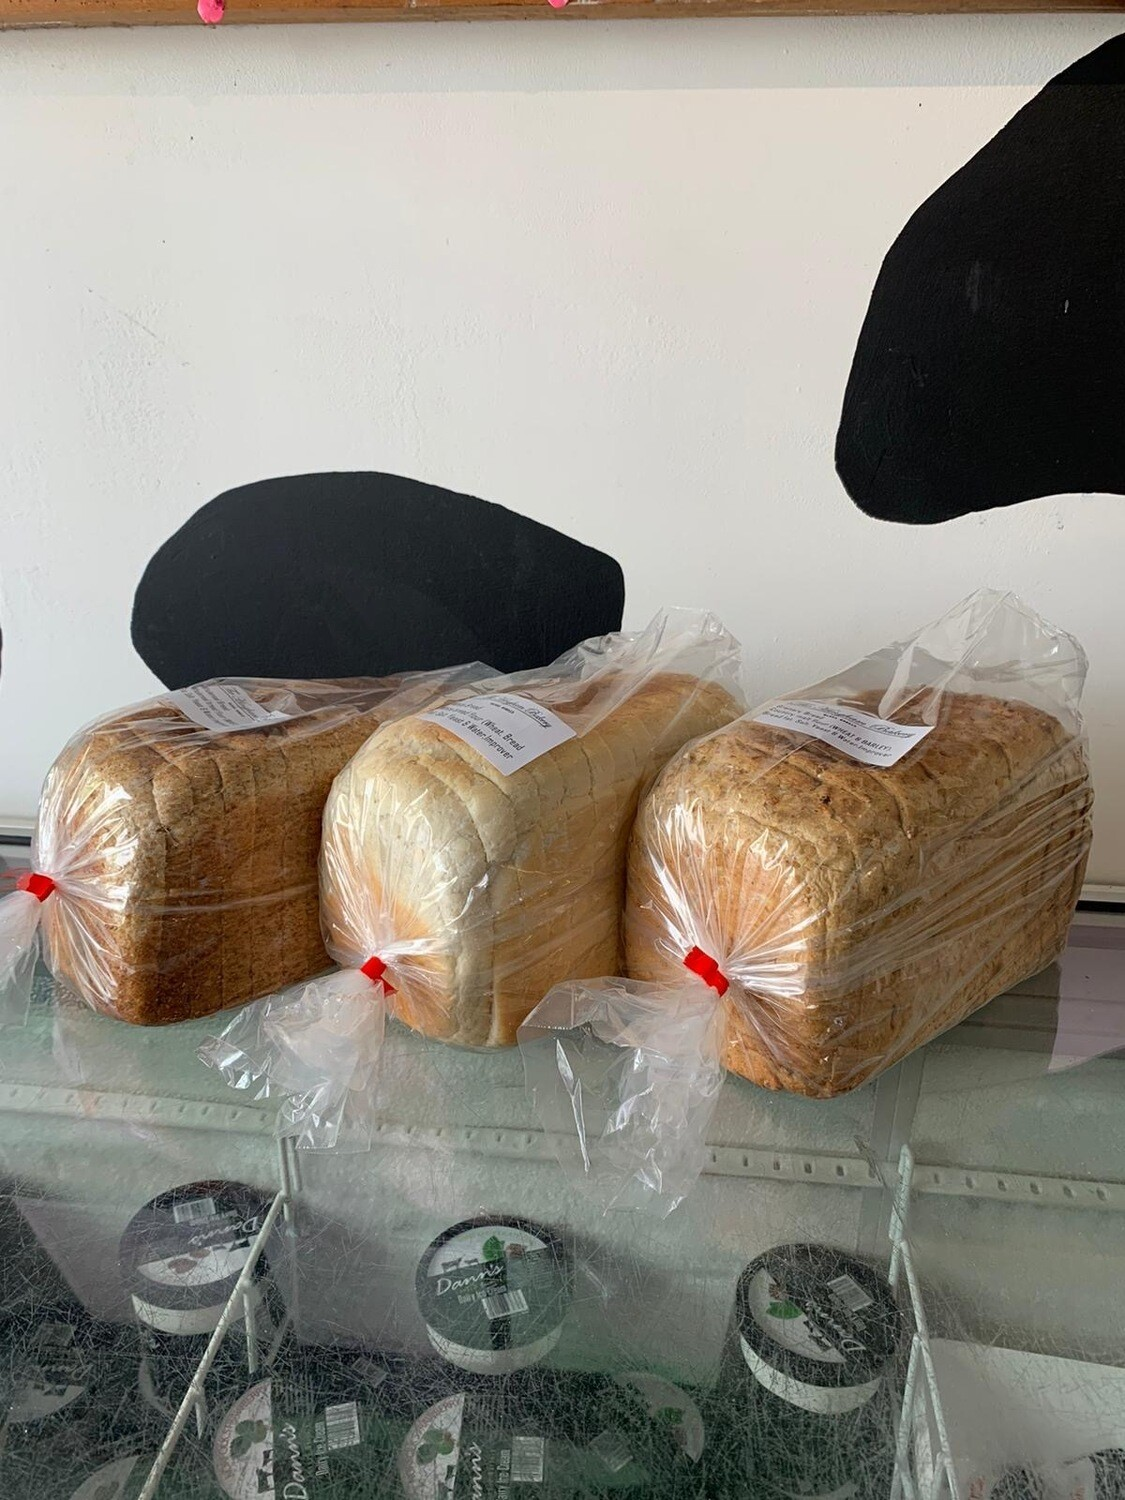 Local Bakery Bread